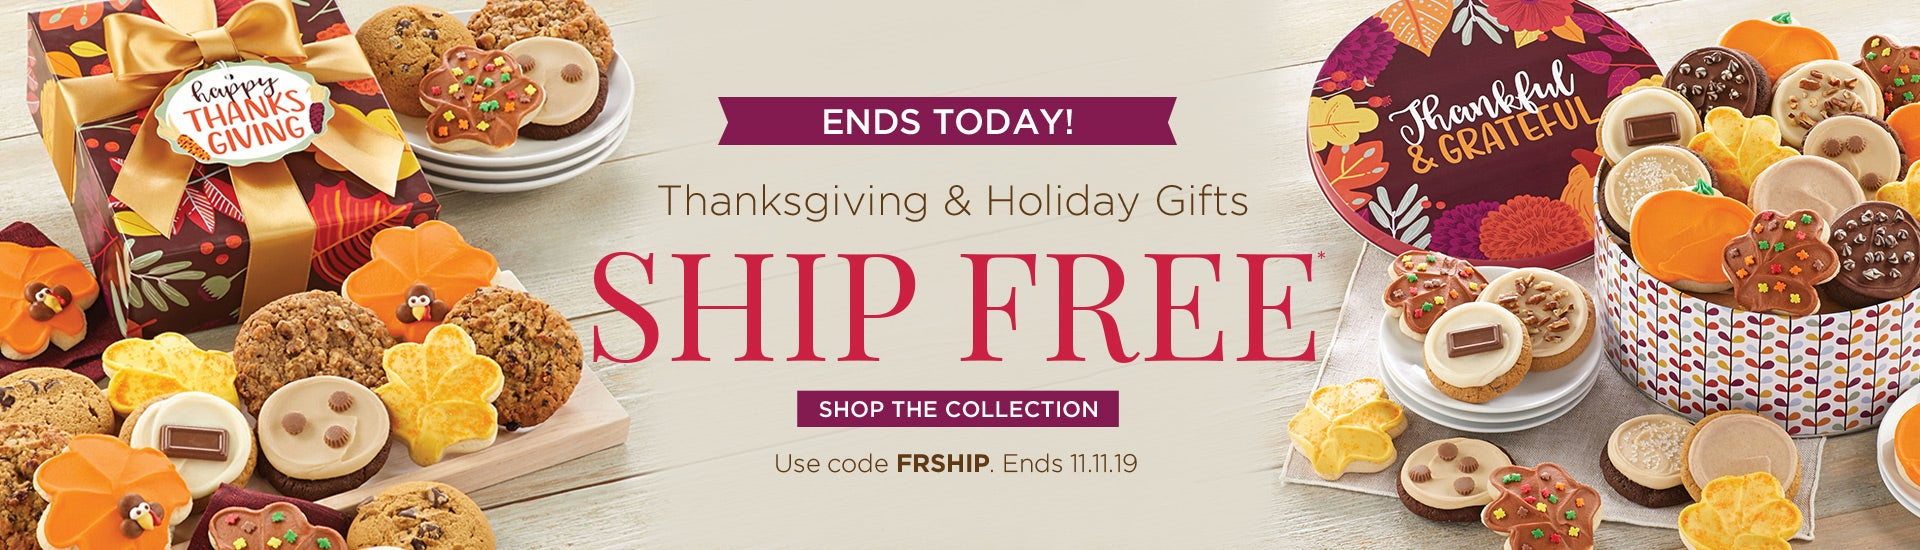 Thanksgiving and Holiday Ships Free